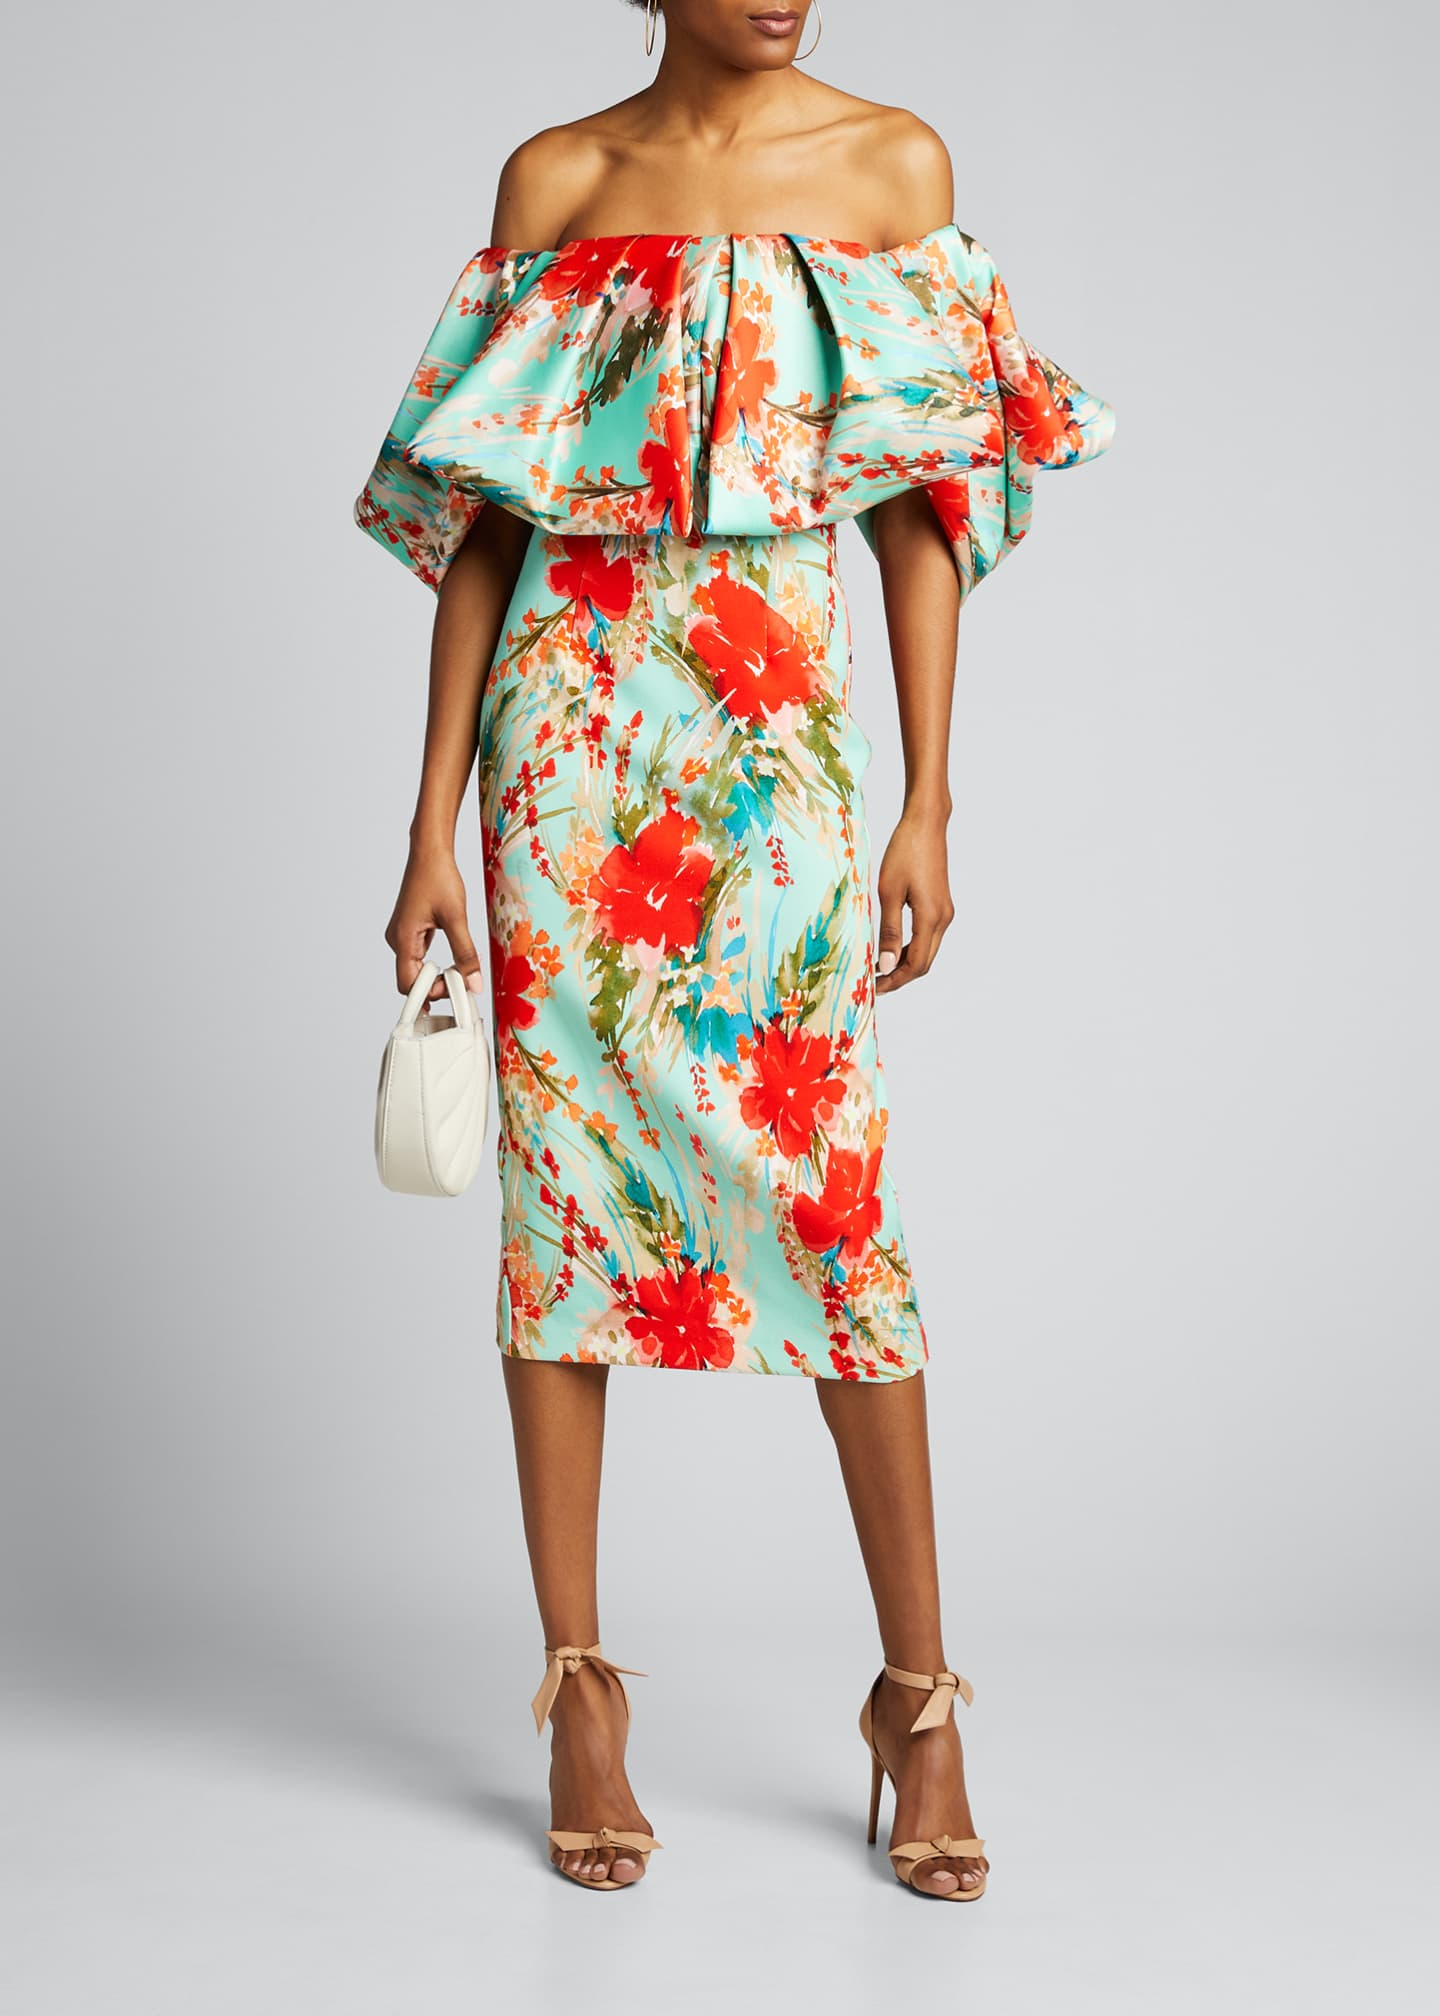 Badgley Mischka Collection Floral Off-the-Shoulder Puff-Sleeve